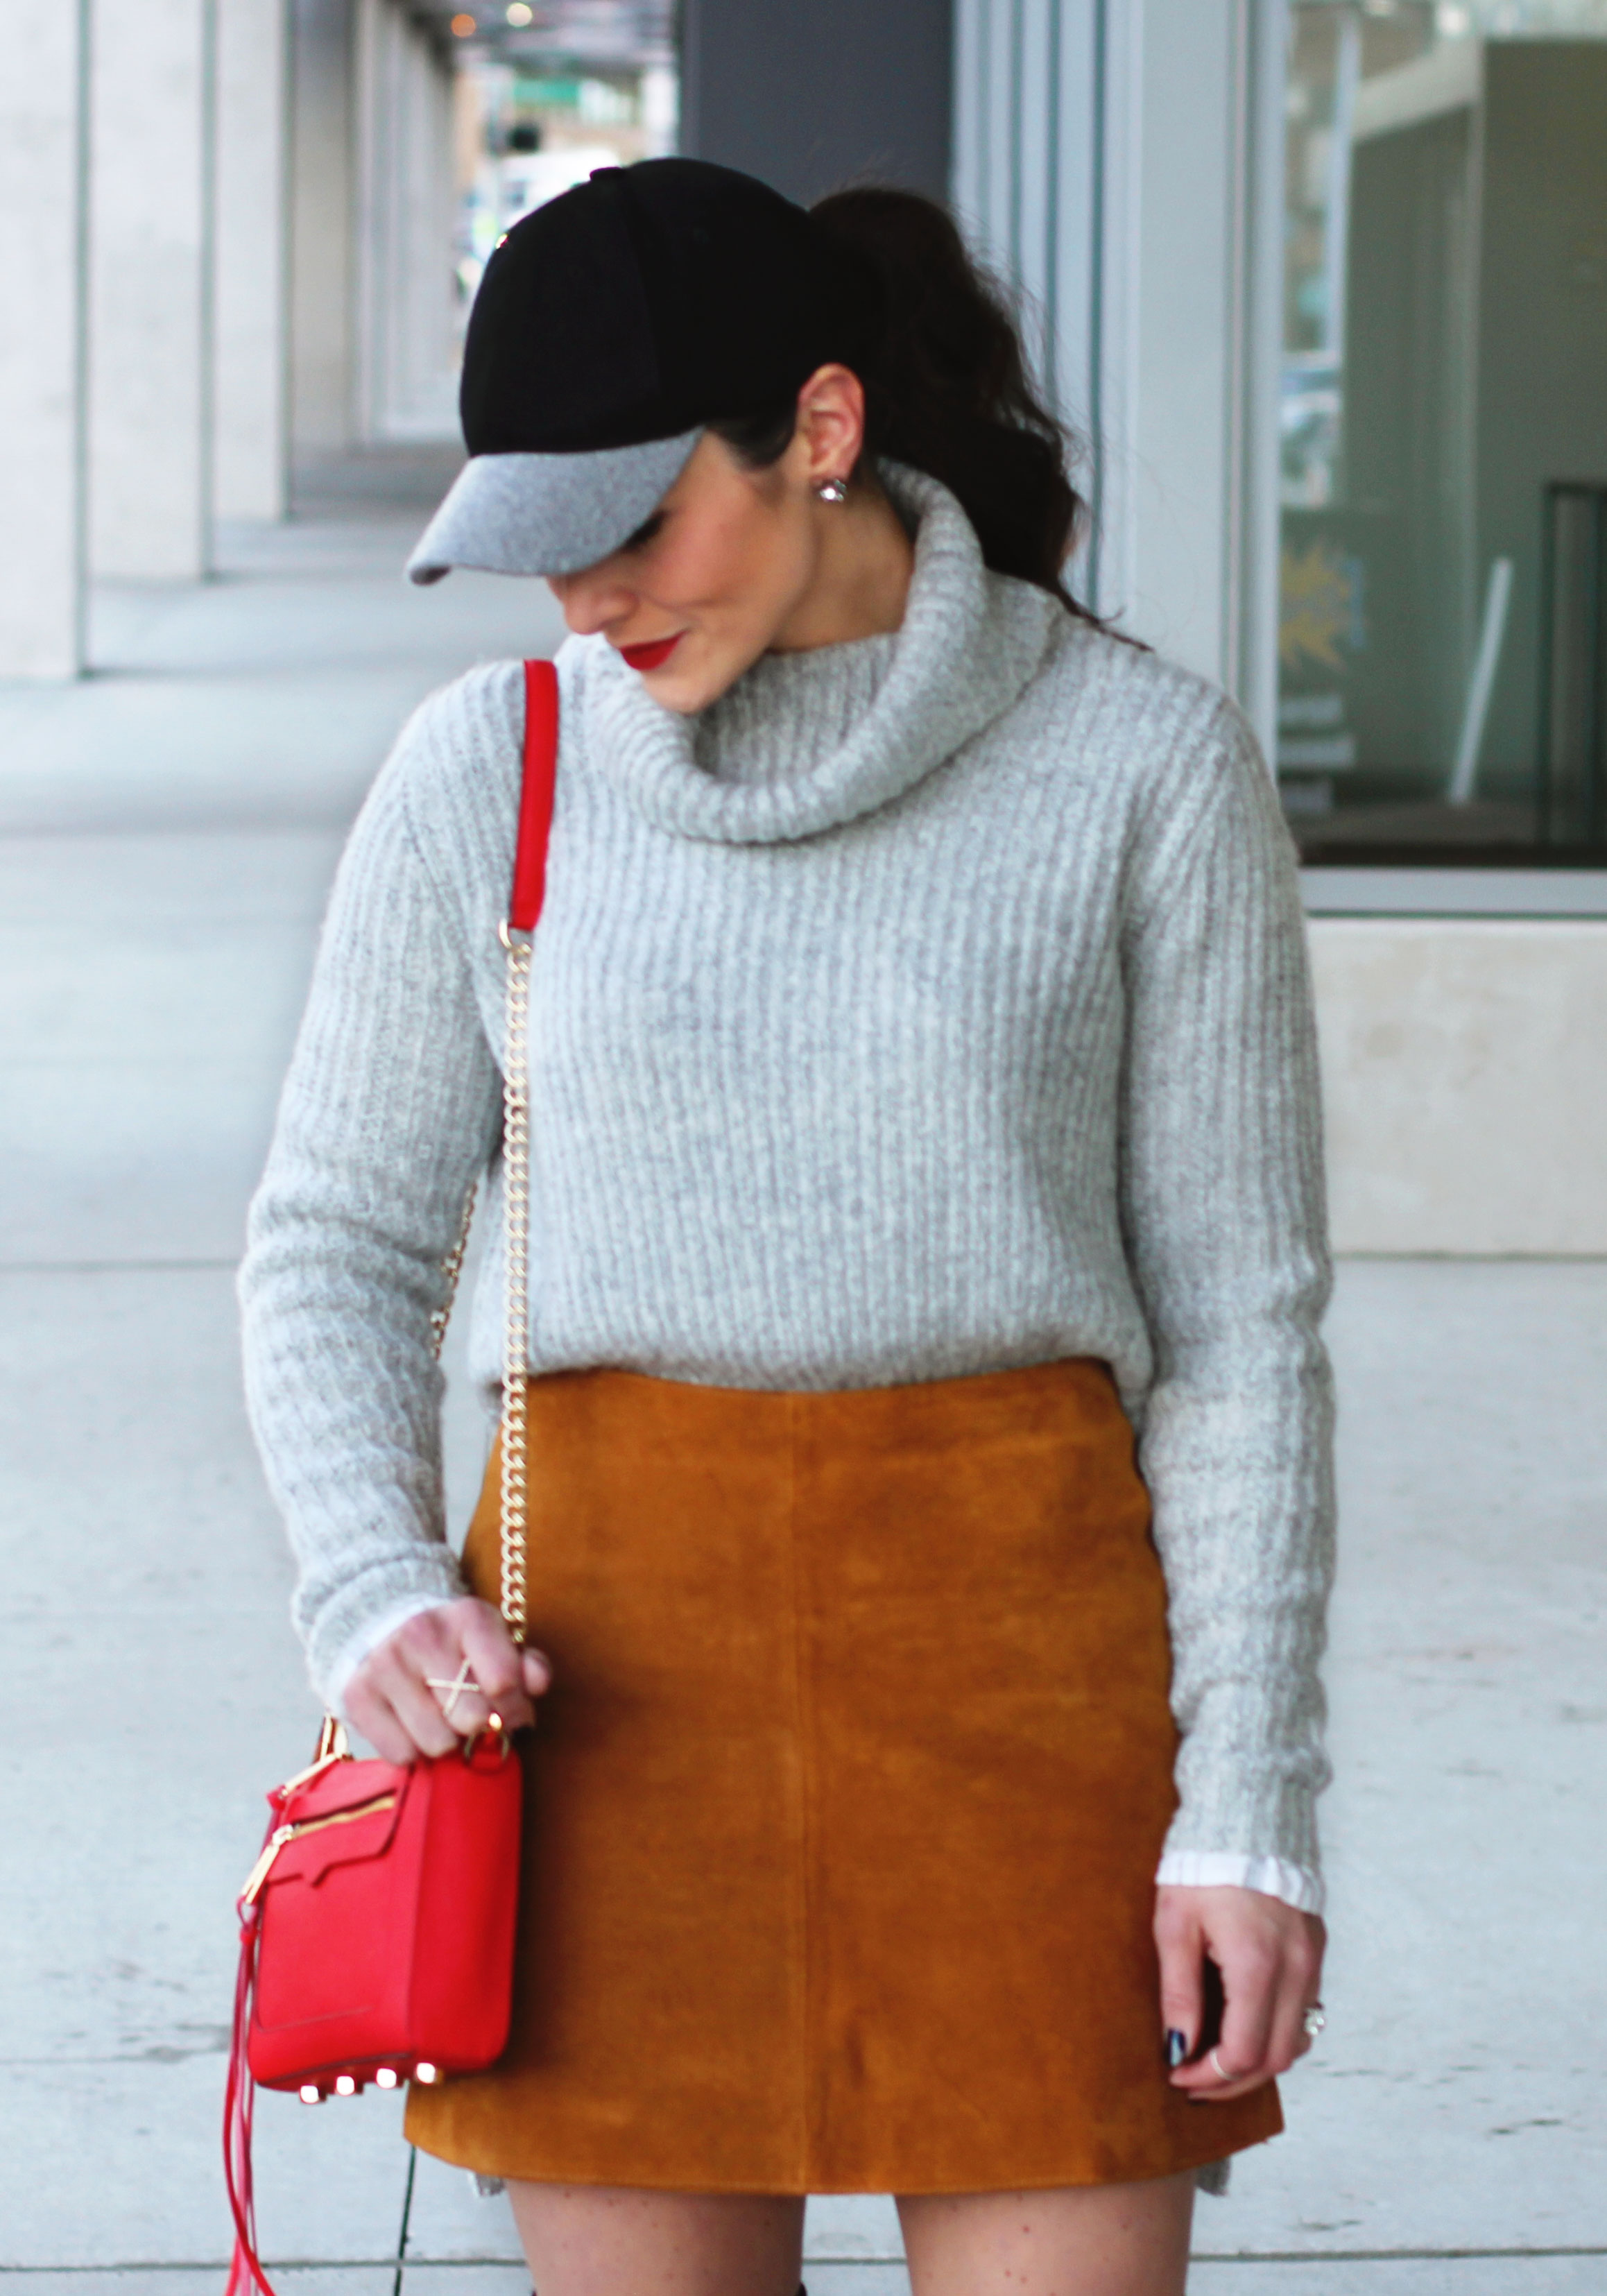 Winter Outfit, Sweater with Suede Skirt, Steve Madden Gorgeous Over The Knee Boots, Wool Baseball Hat, Red Rebecca Minkoff Avery Crossbody Bag